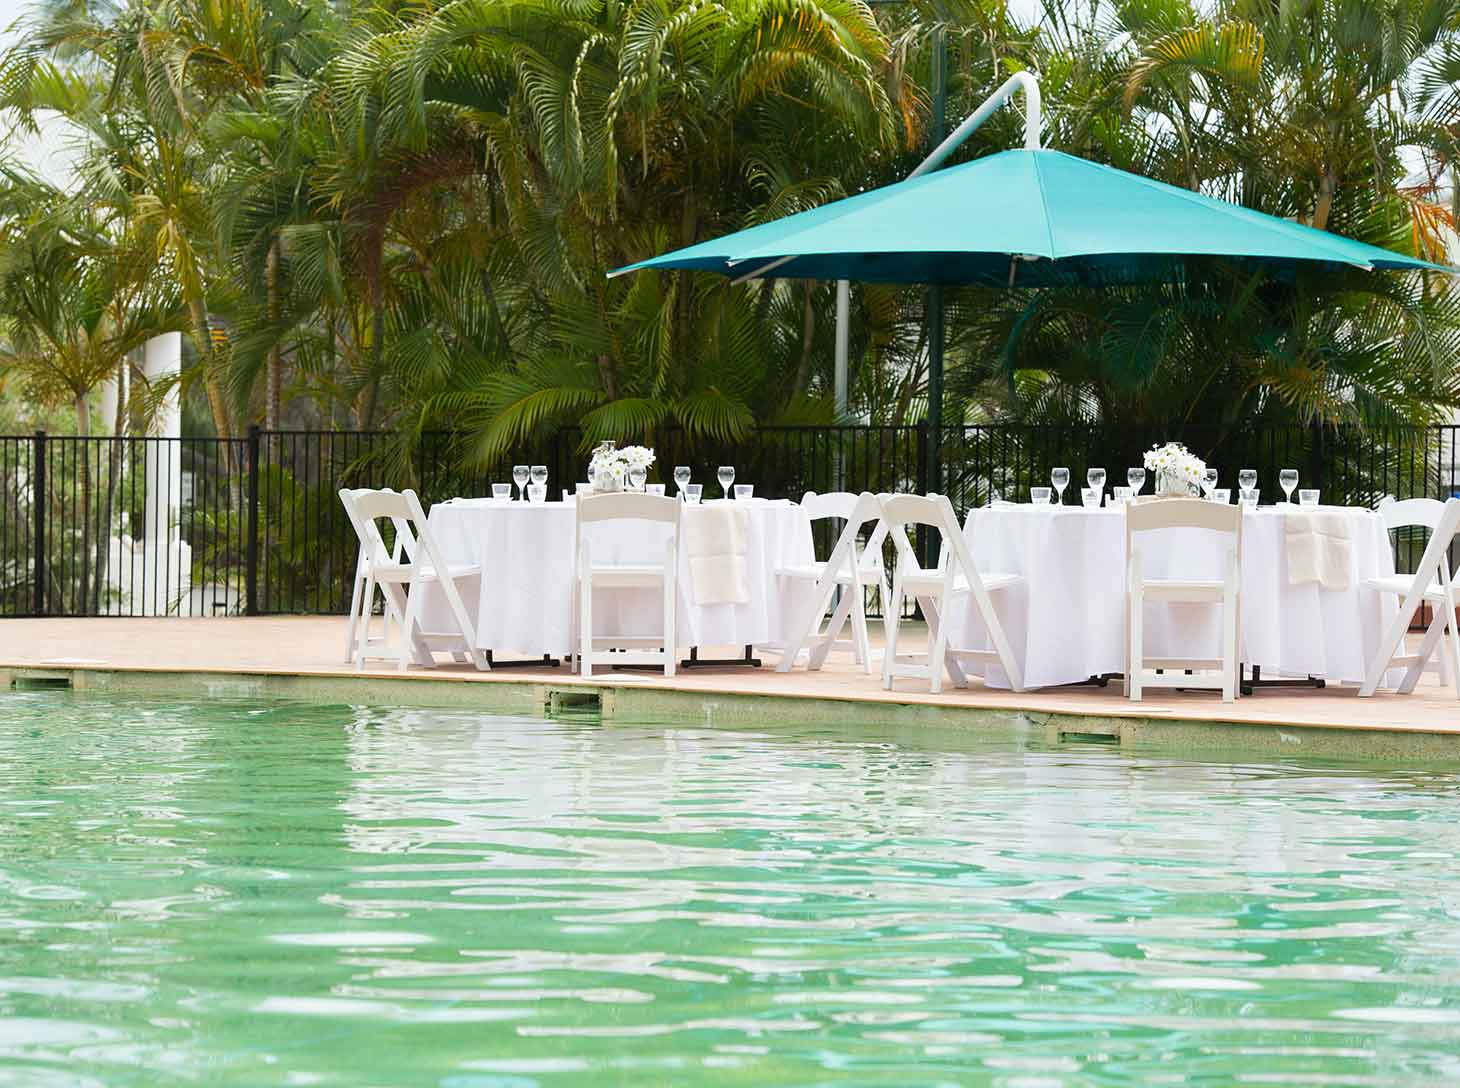 Eurong Beach Resort Weddings - Poolside Reception